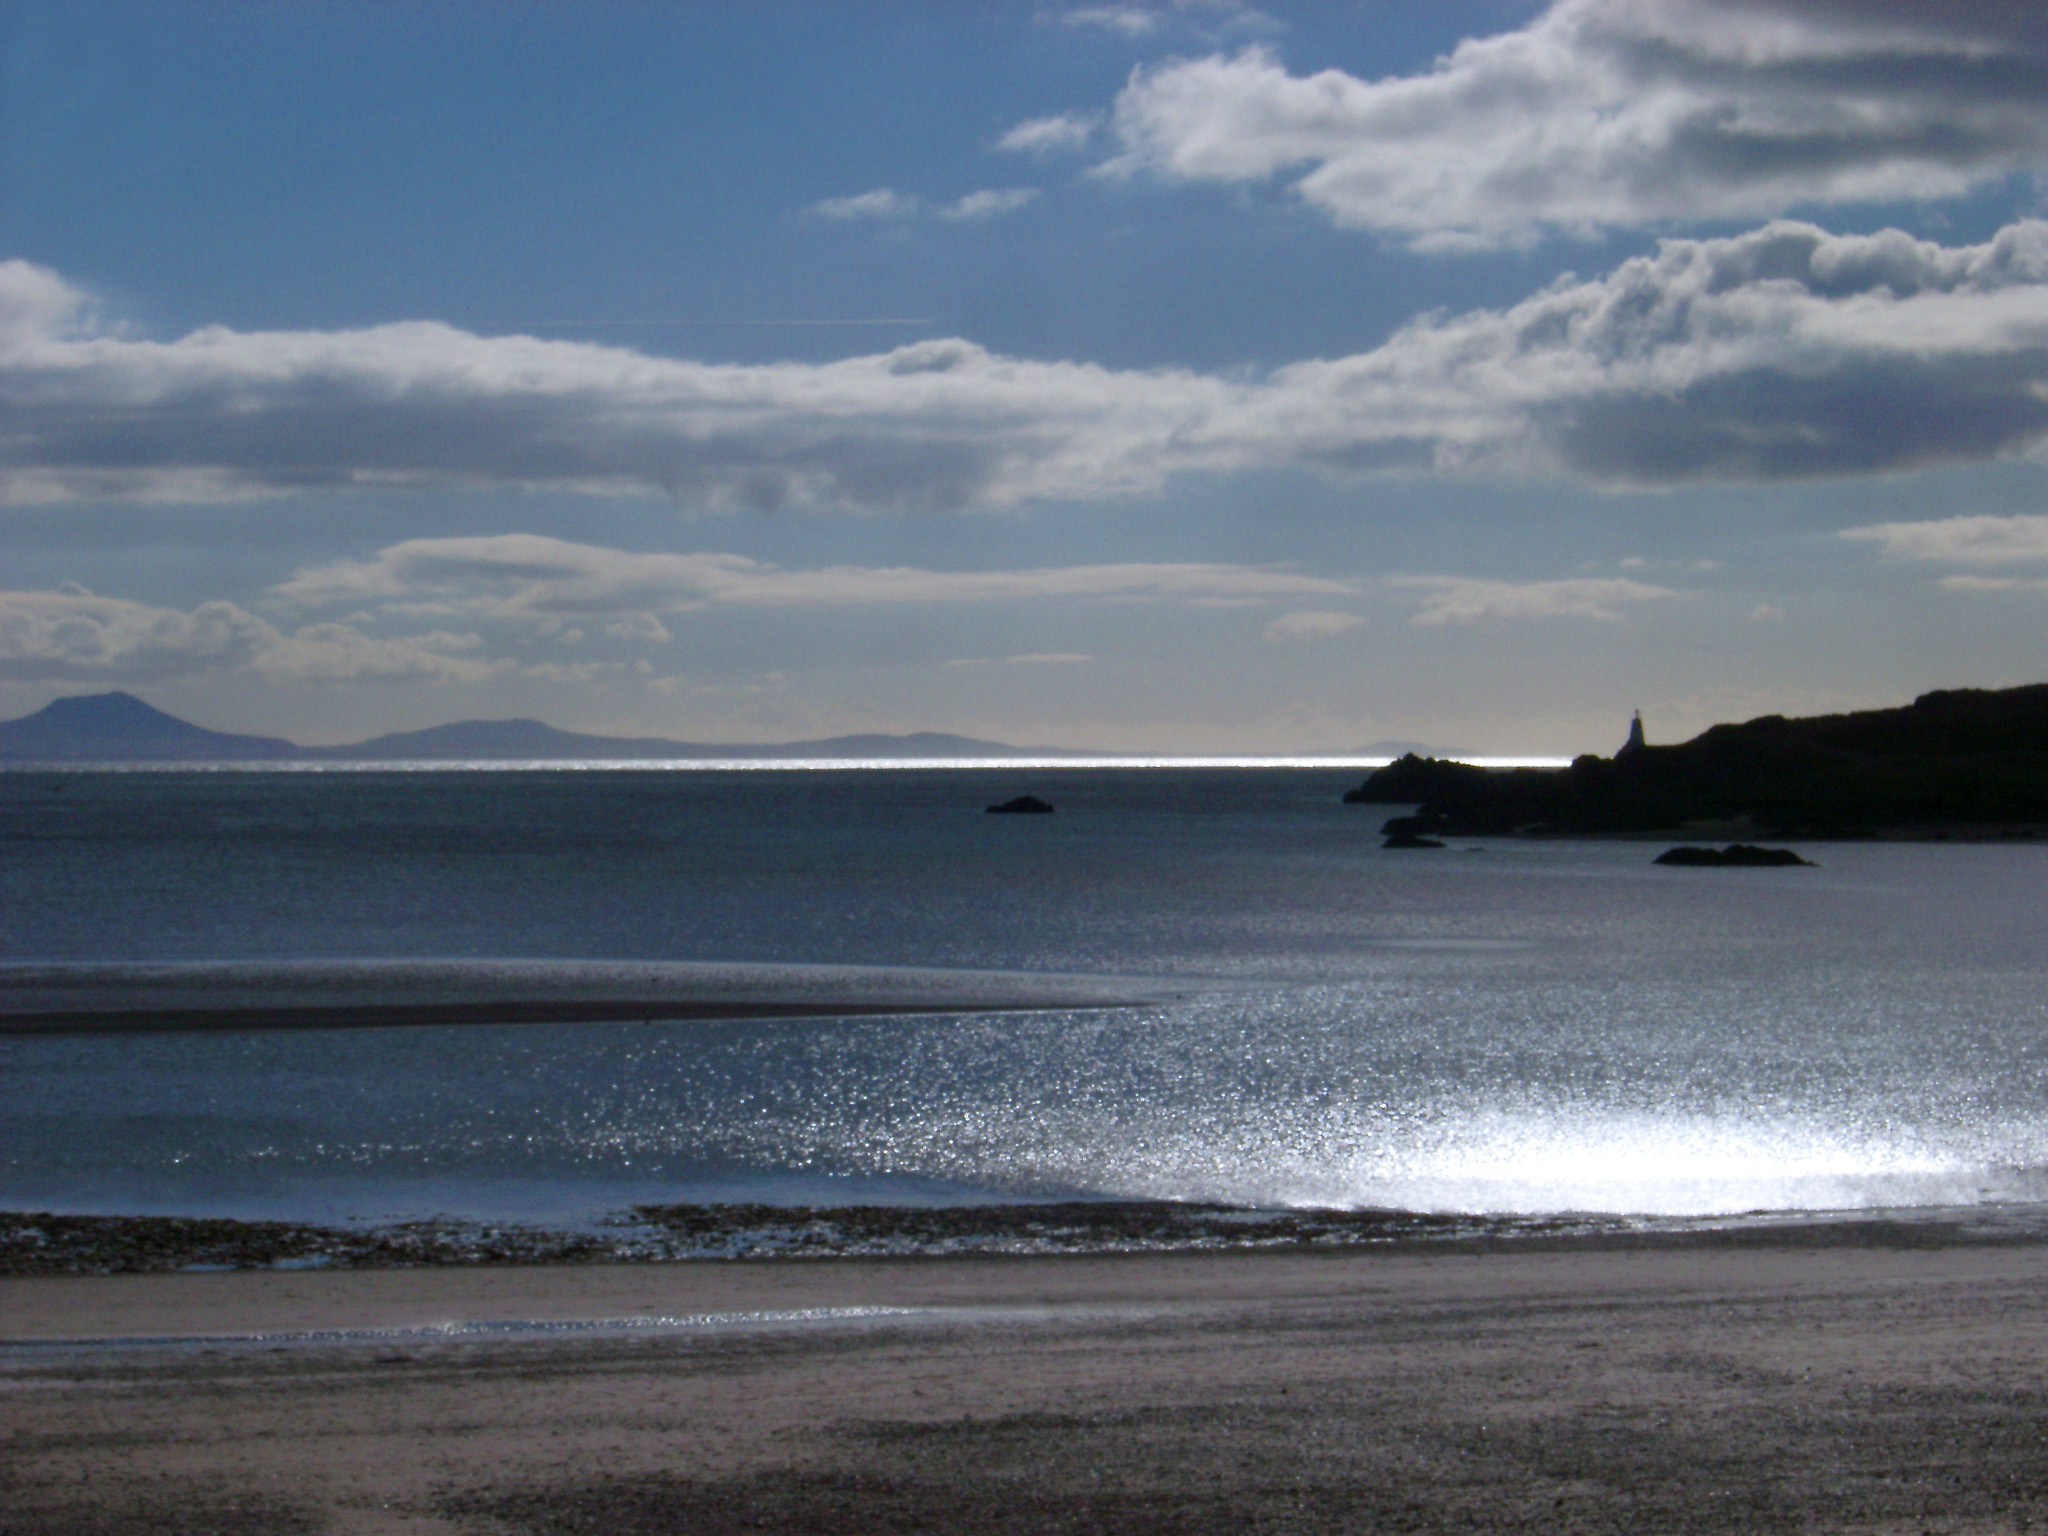 Silhouette View Towards the Welsh Mainland from Romantic Beach of Llanddwyn Island During Afternoon.